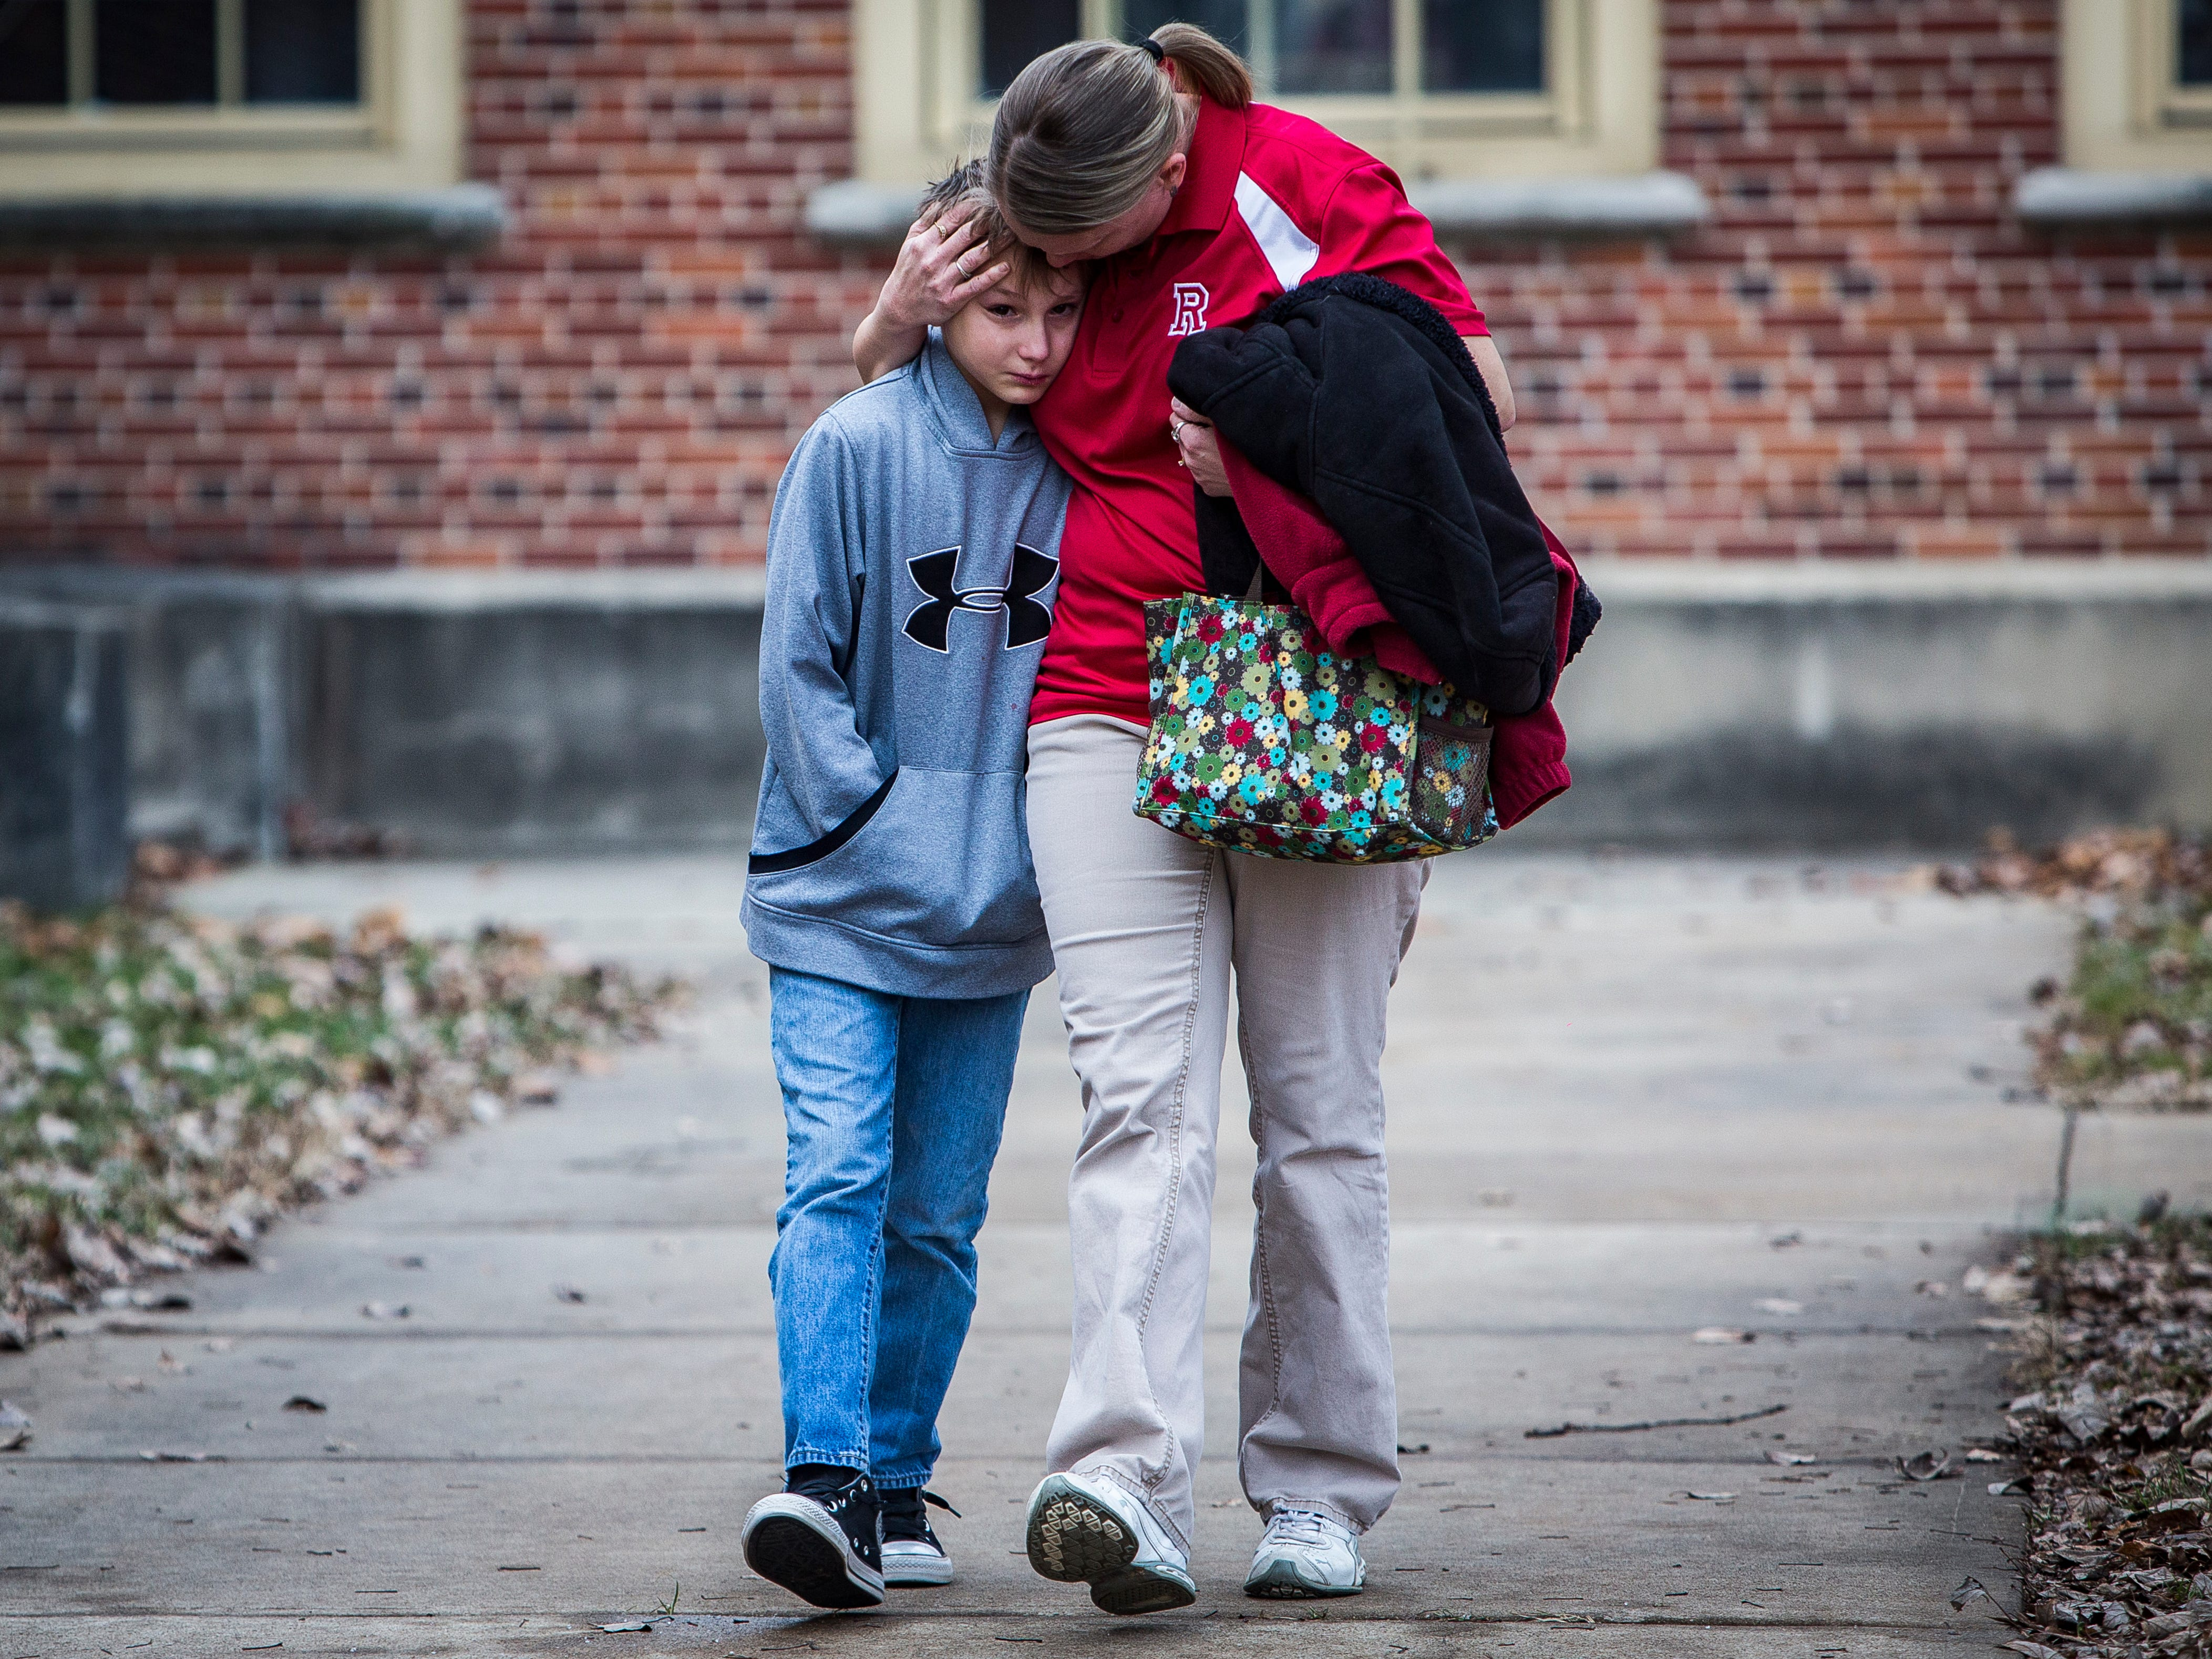 Marietta Bryant hugs her son, Austin, after they reunited at the Civic Performing Arts Center following an attempted school shooting at Dennis Middle School Thursday morning.